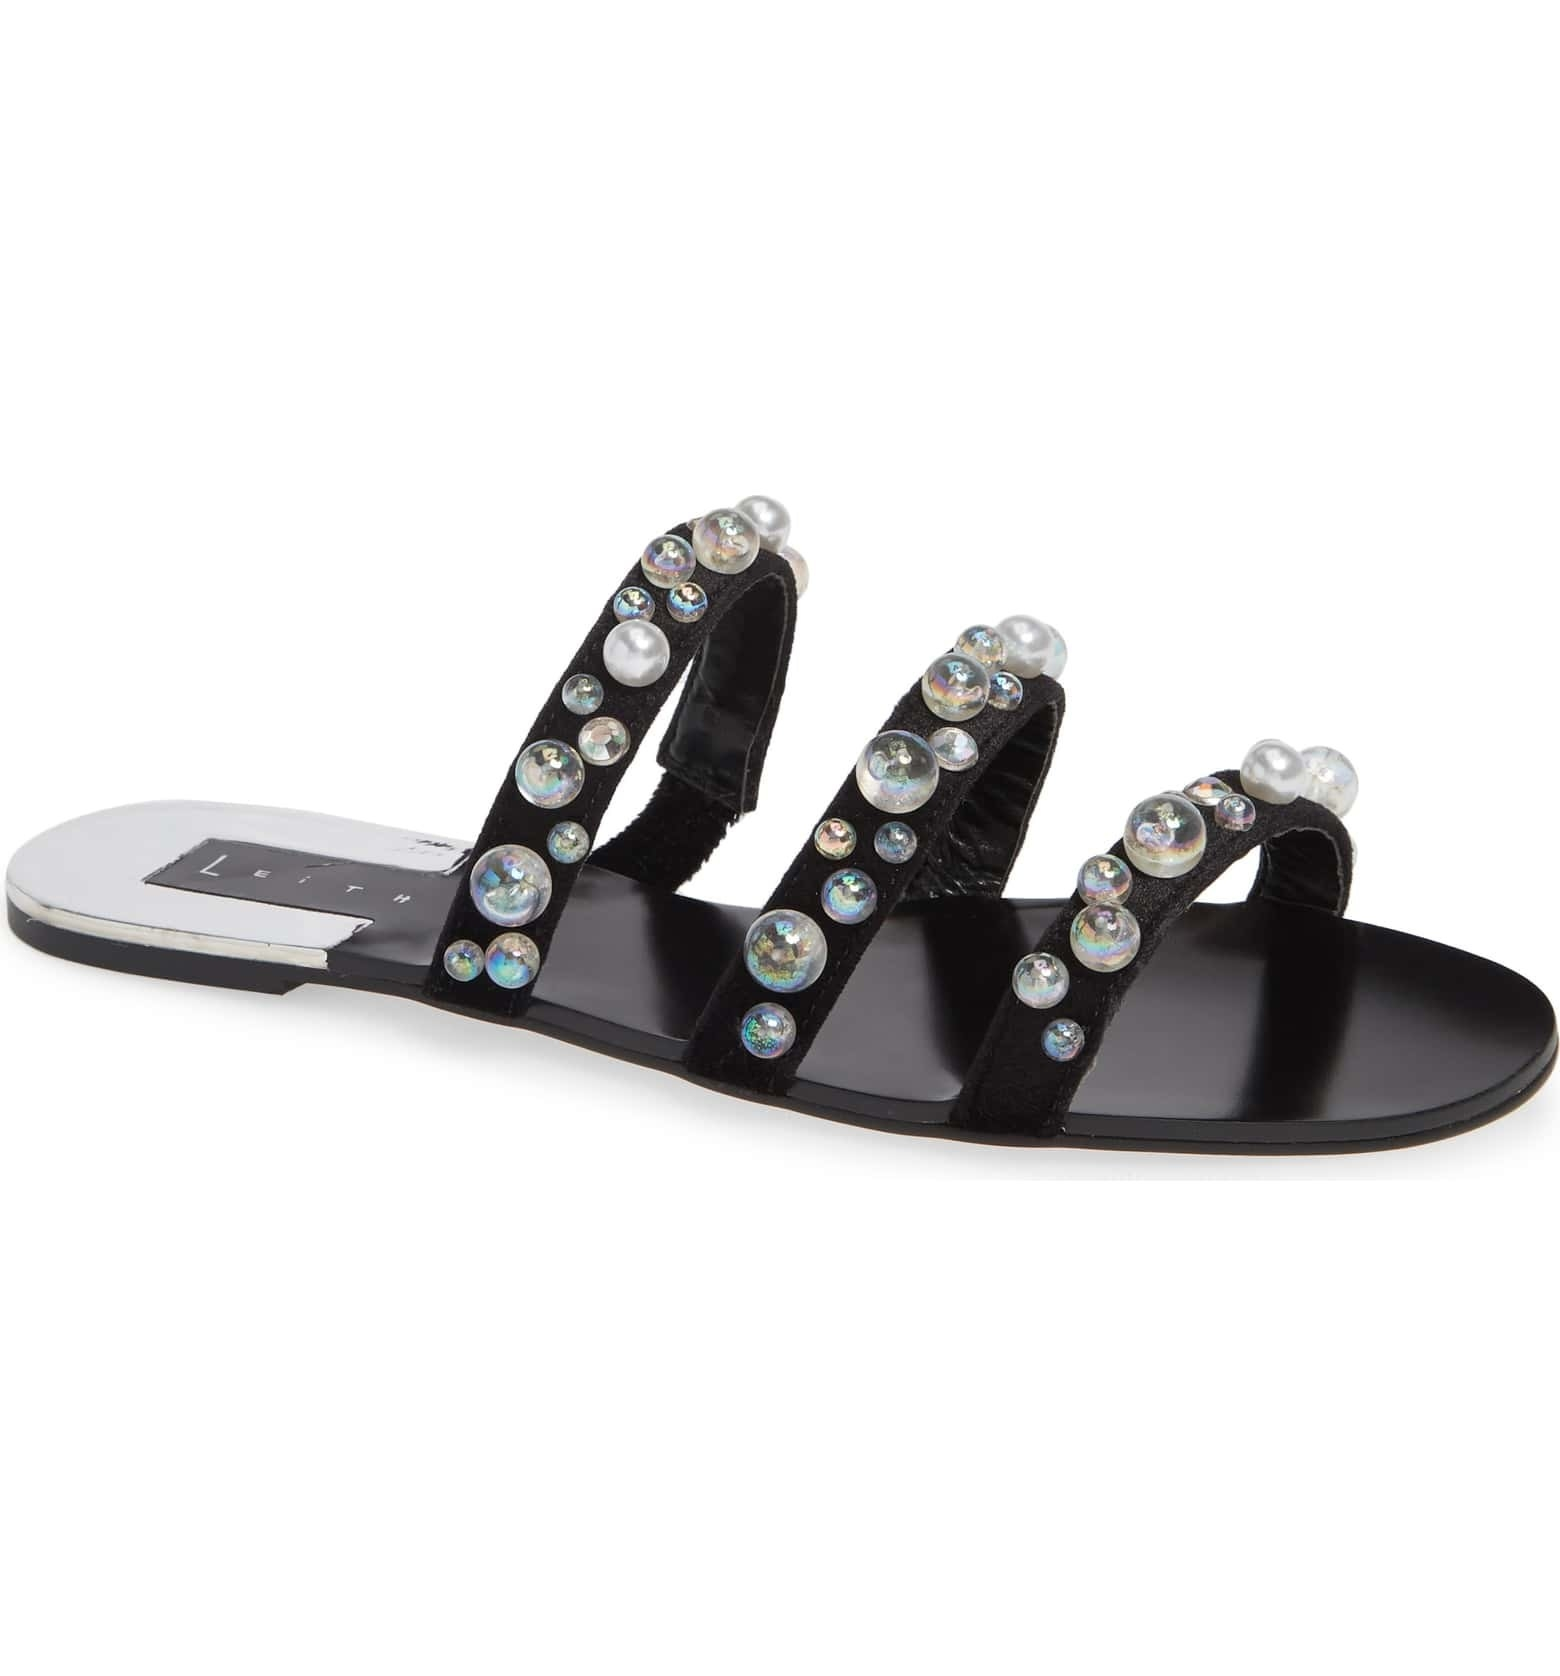 a6603830a5ba Sandals embellished with pearls that are simply heavenly and a must-have  for your warm weather wardrobe.